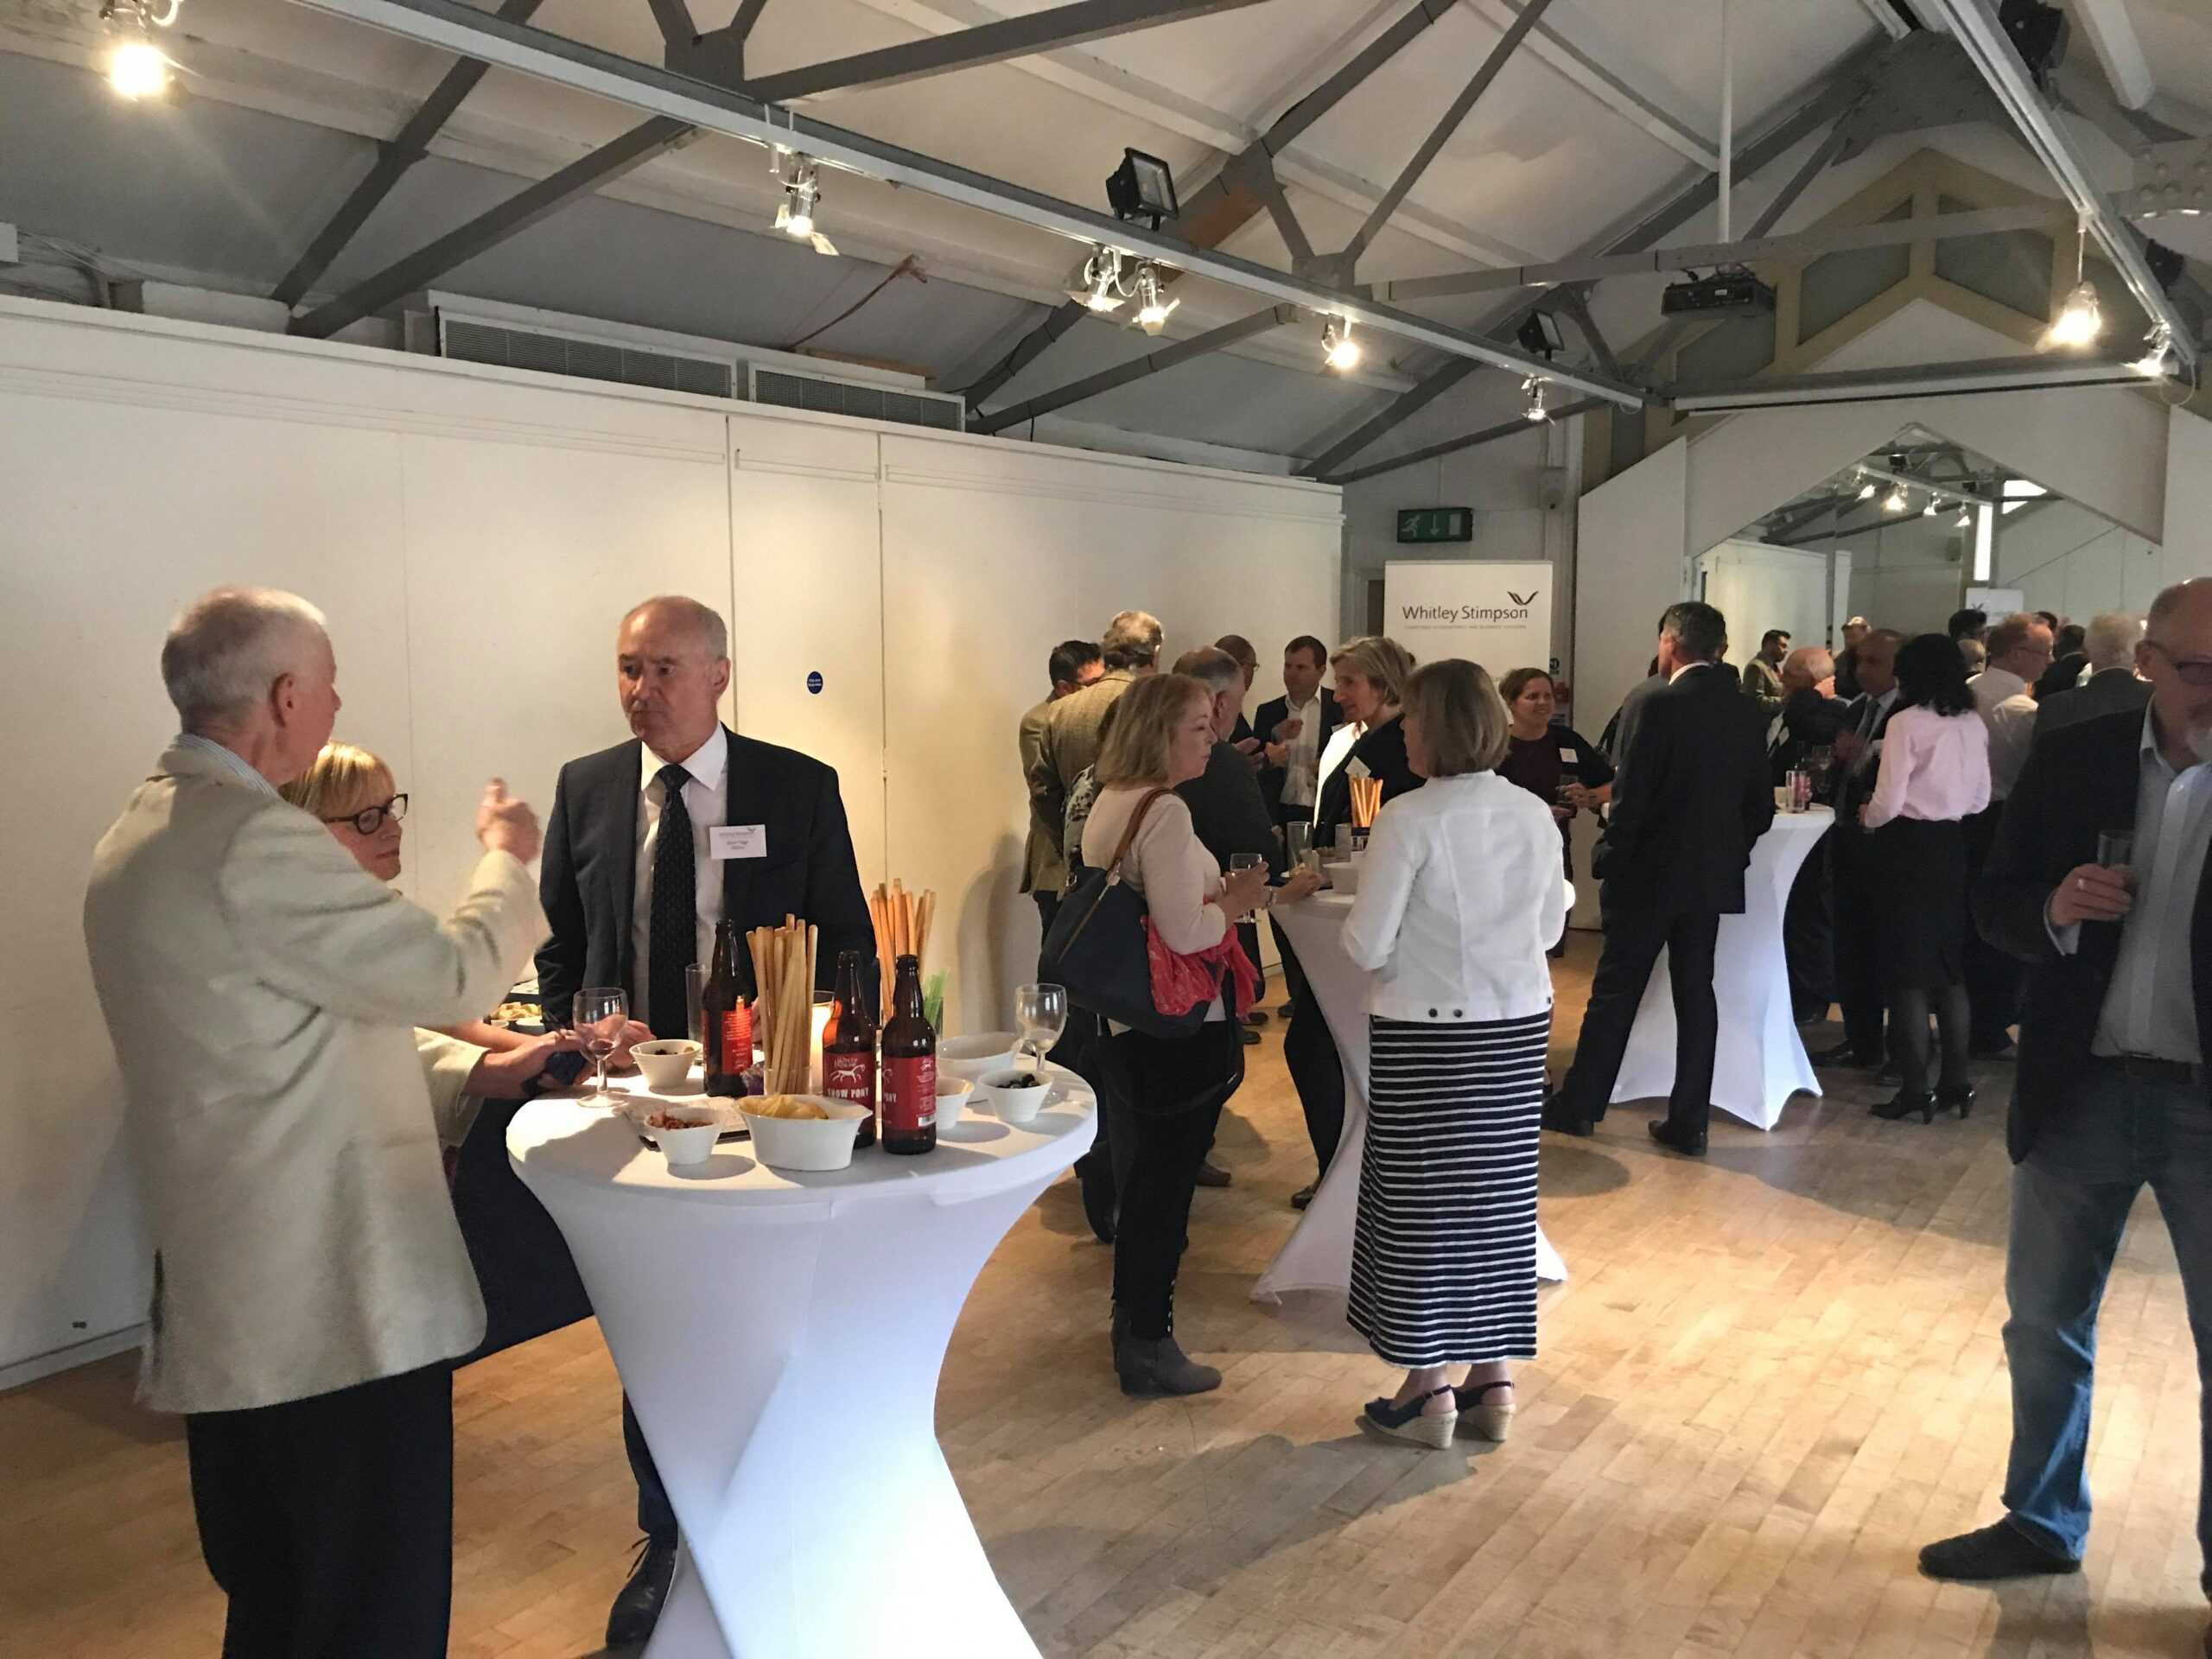 Whitley Stimpson hosts Oxford networking event